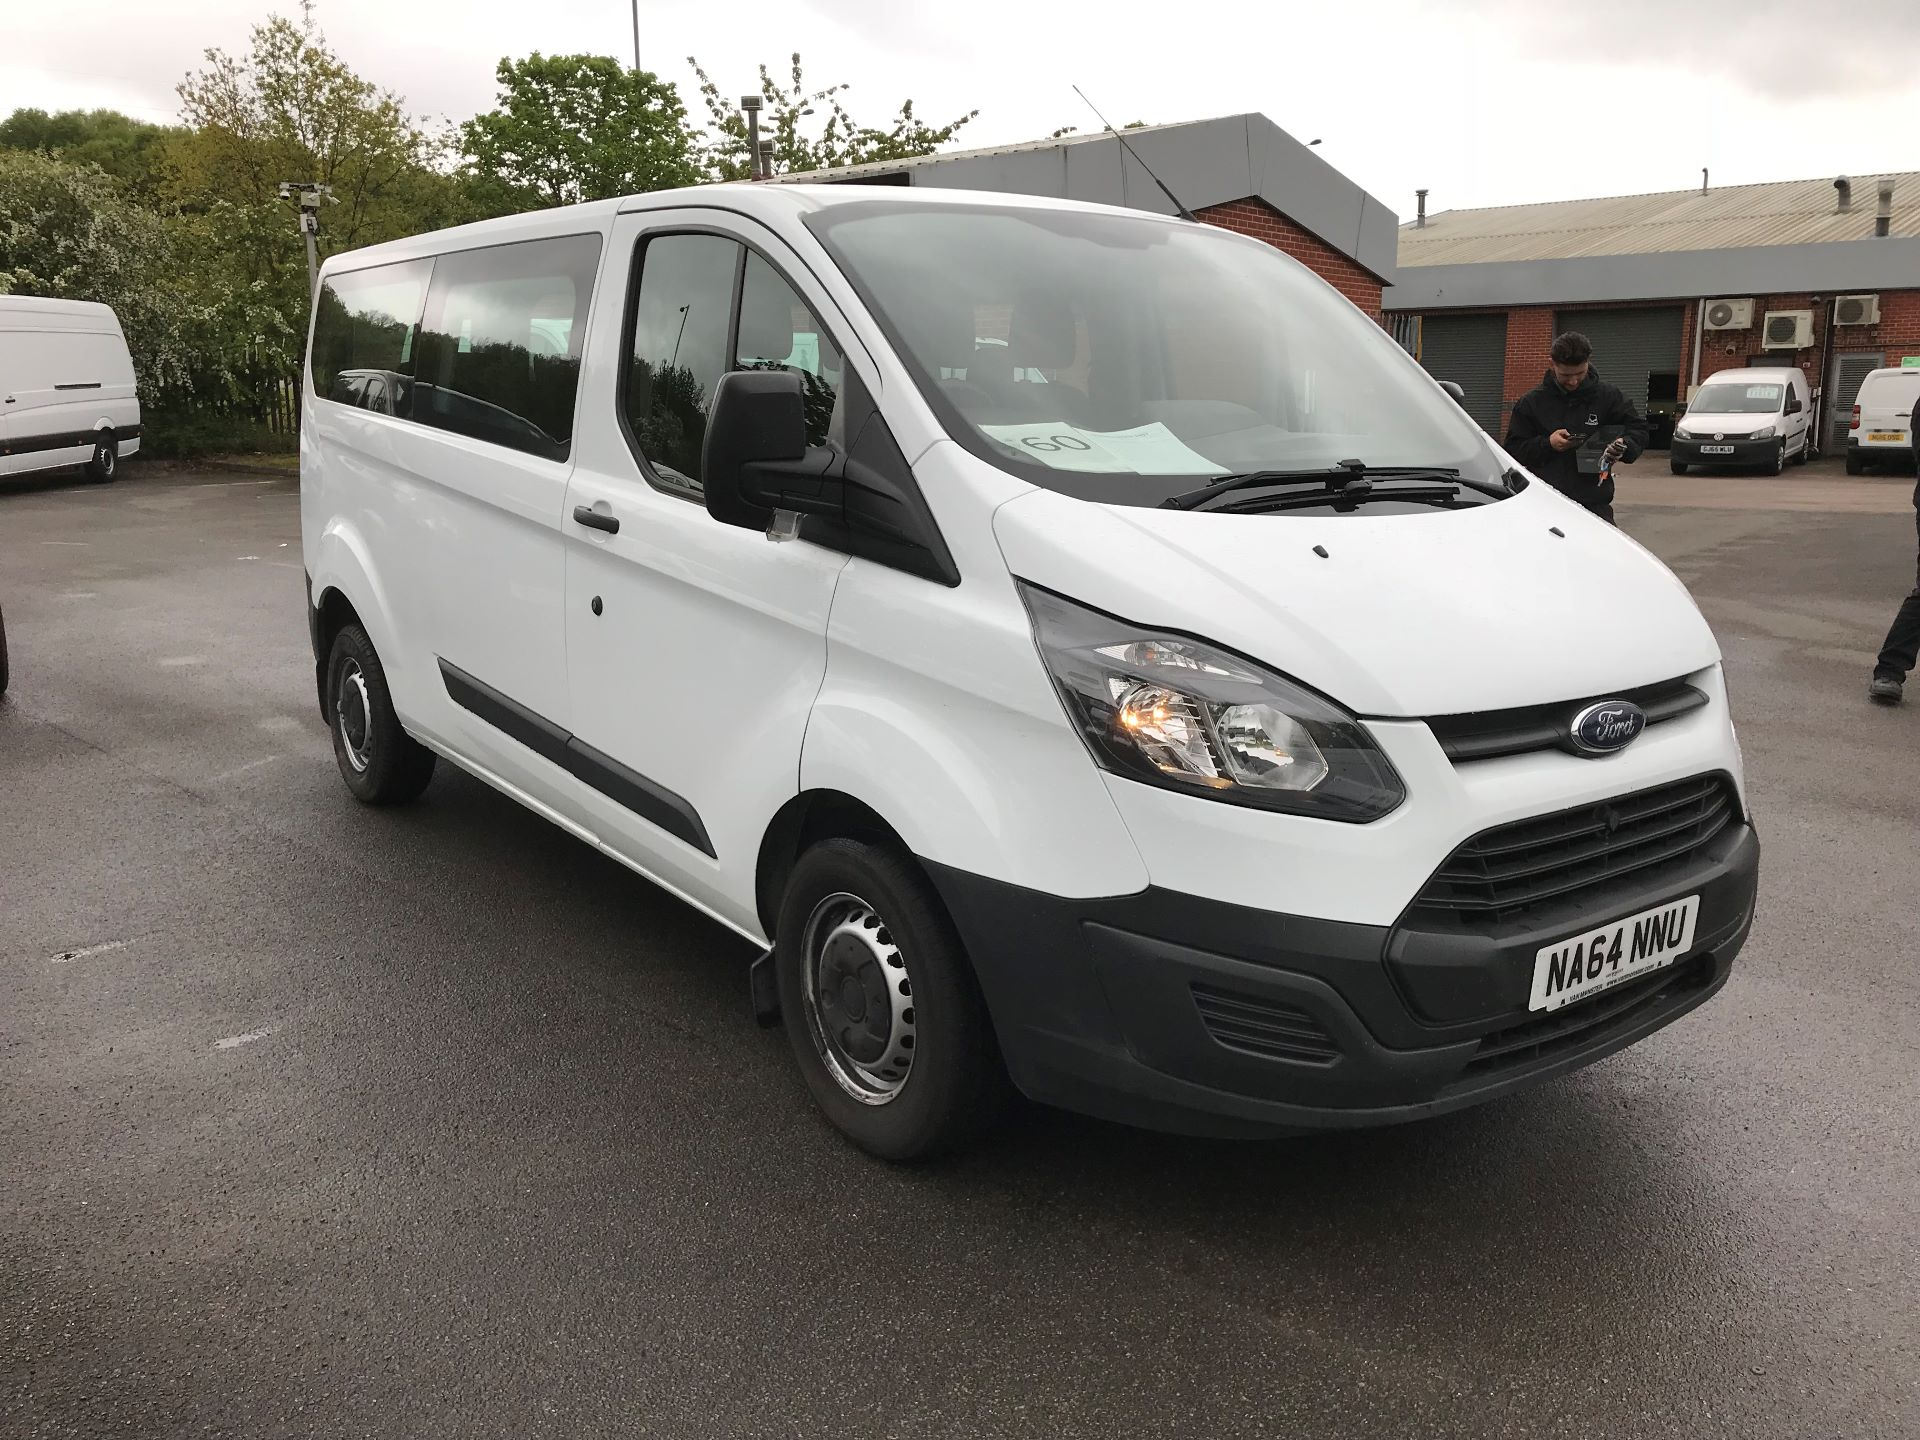 2014 Ford Transit Custom 310  L2 DIESEL FWD 2.2 TDCI 125PS LOW ROOF KOMBI VAN EURO 5 VAT INC (NA64NNU)